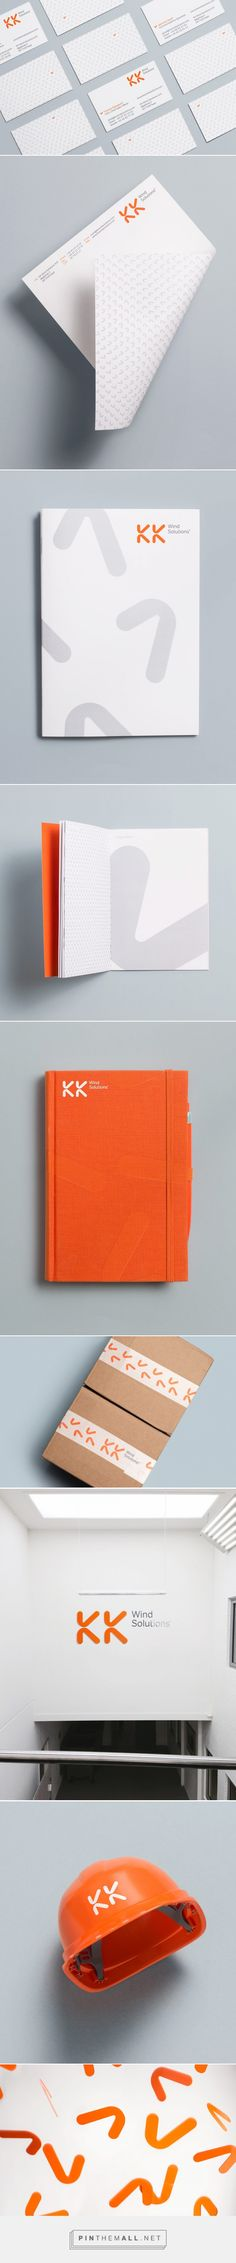 Brand New: New Logo and Identity for KK Wind Solutions by Heydays... - a grouped images picture - Pin Them All